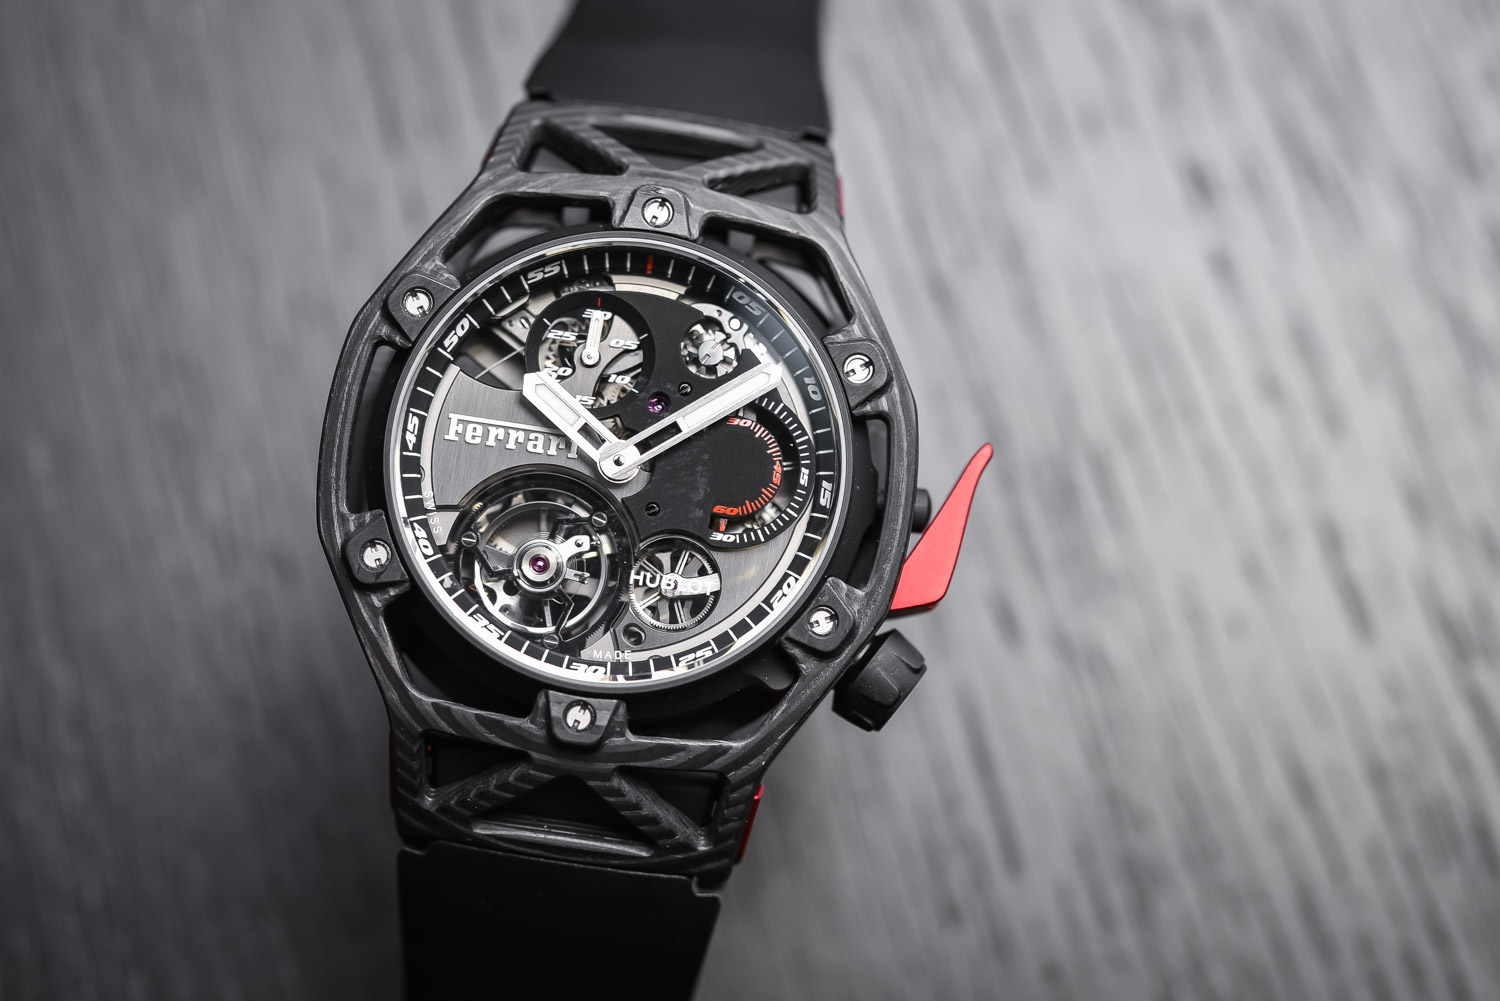 sharp auto race watches inspired magazine racing against time luxury